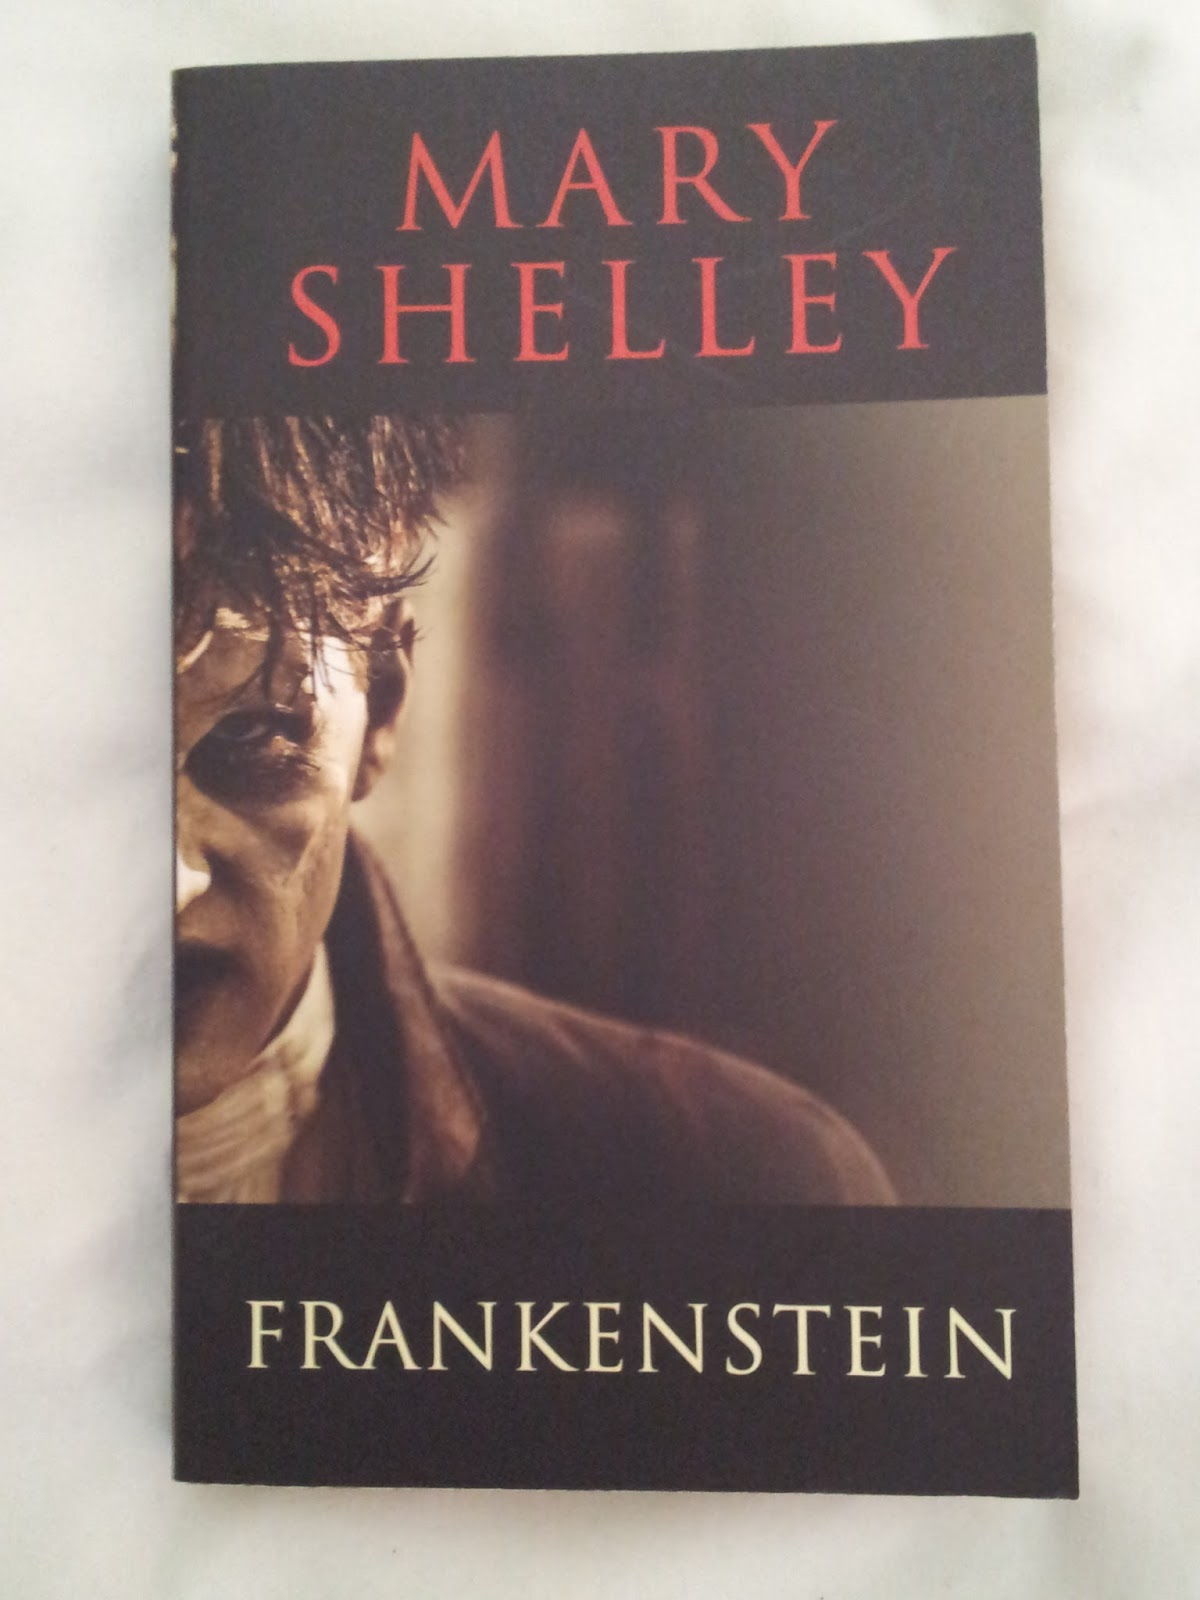 revenge in mary shelleys frankenstein essay A teacher's guide to the signet classics edition of mary shelley's frankenstein 5 health and  and refuses despite the creature's threats of revenge frankenstein.